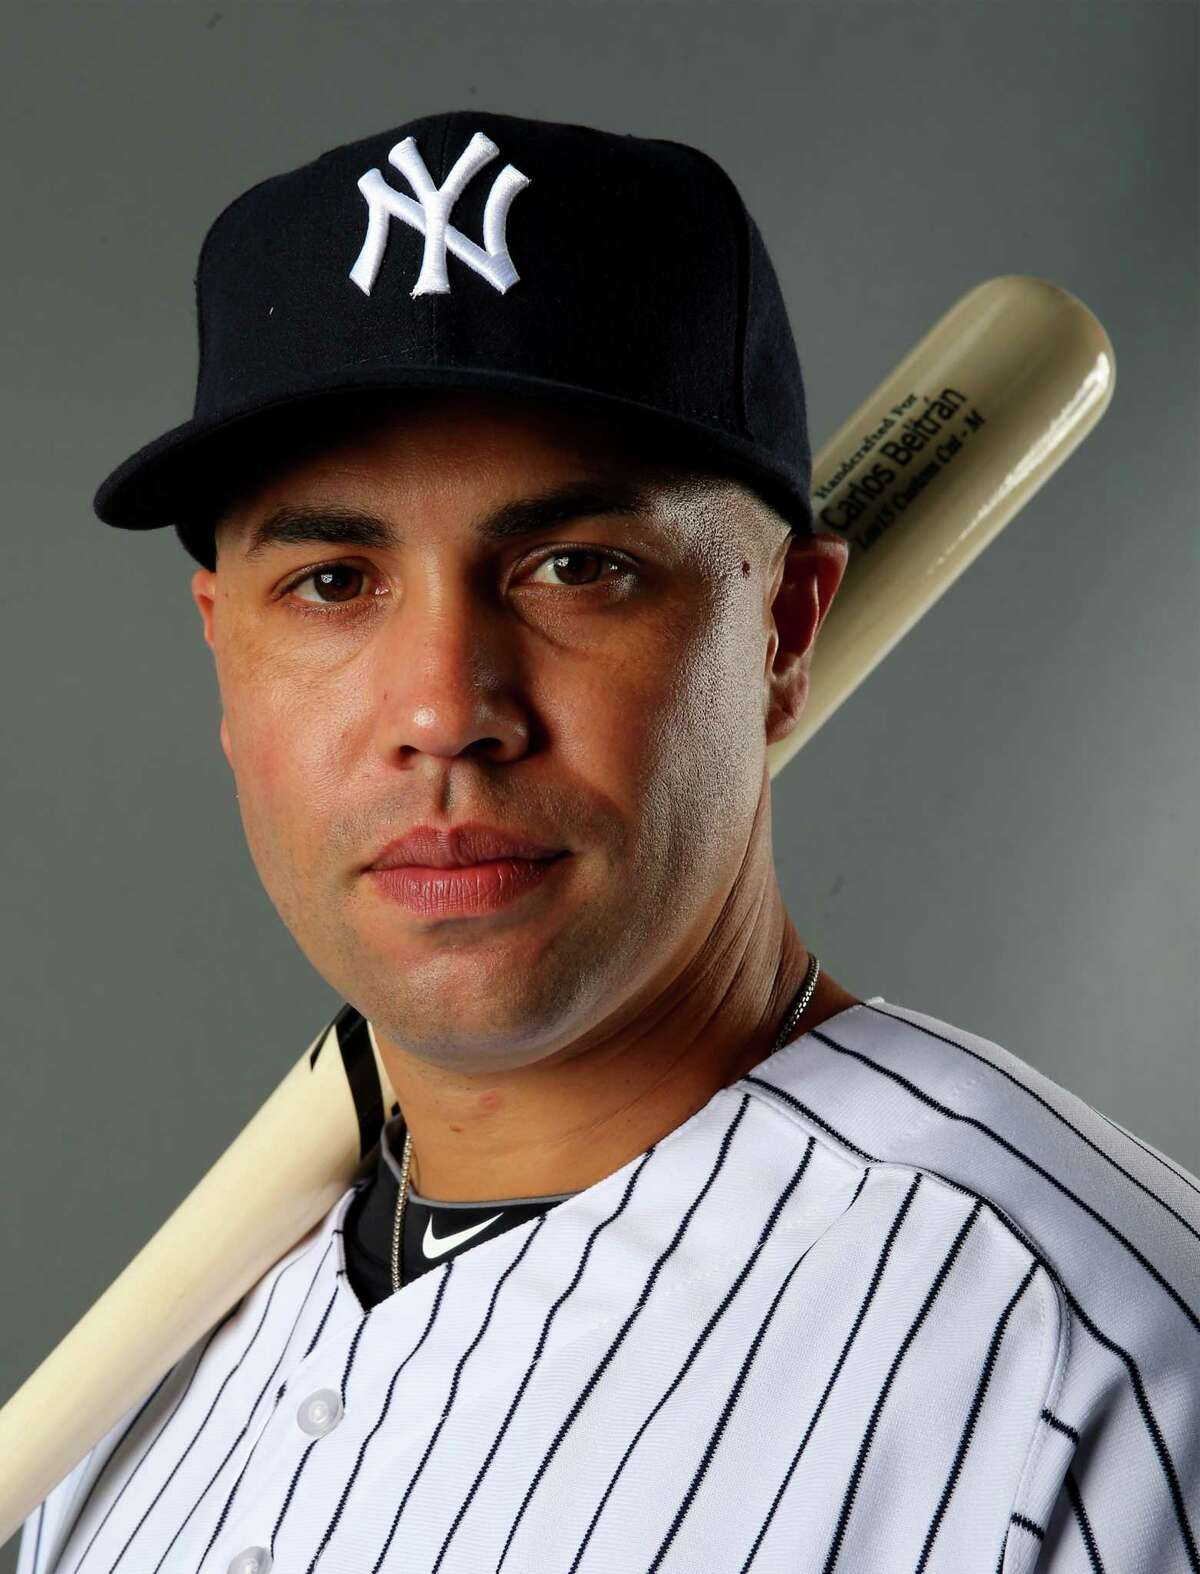 TAMPA, FL - FEBRUARY 22: Carlos Beltran #36 of the New York Yankees poses for a portrait during New York Yankees Photo Day on February 22, 2014 at George M. Steinbrenner Field in Tampa, Florida. (Photo by Elsa/Getty Images) ORG XMIT: 461756135